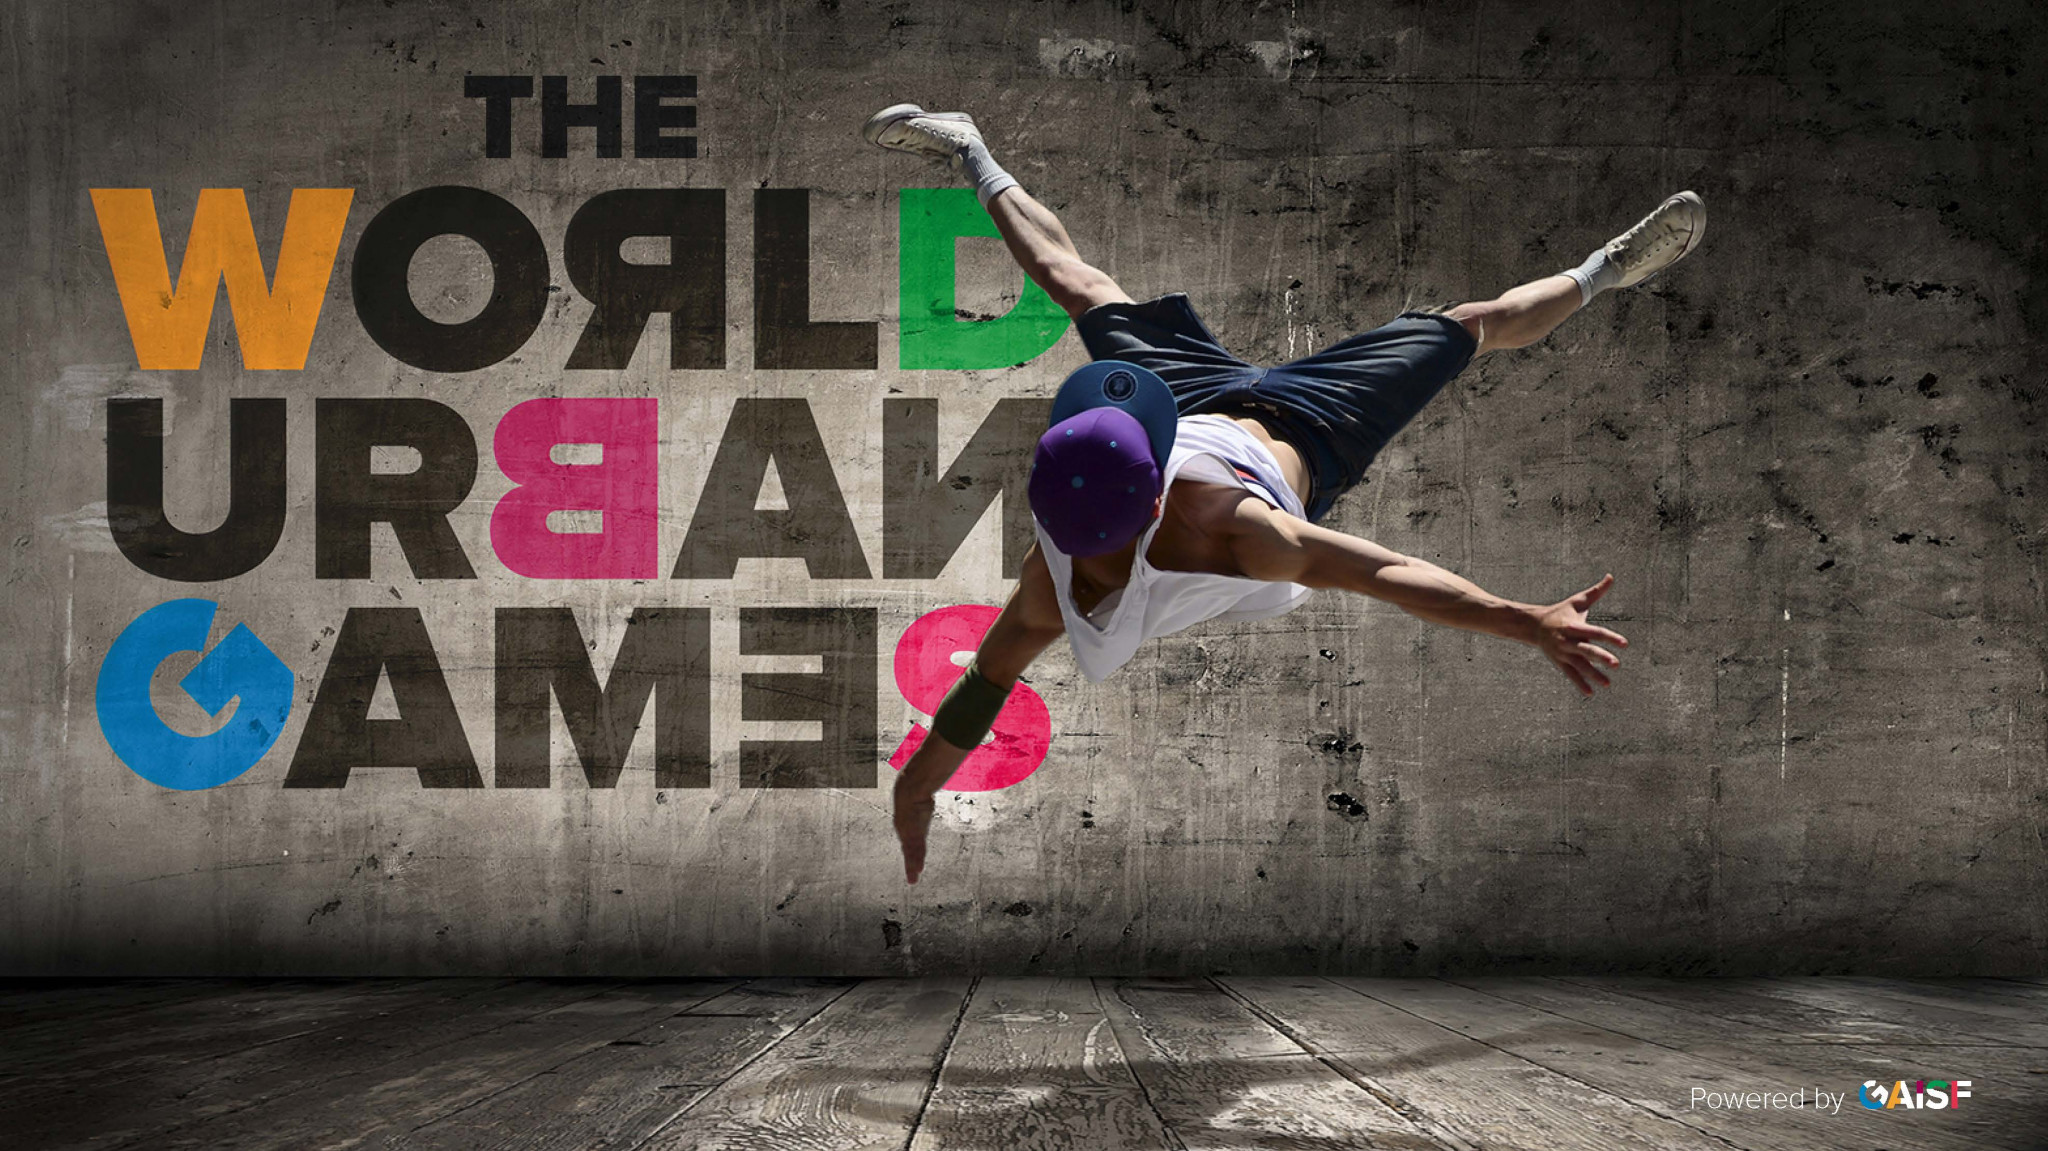 The proposed sports programme for the World Urban Games would include up to 14 disciplines in Olympic and non-Olympic sports, it was revealed today ©World Urban Games